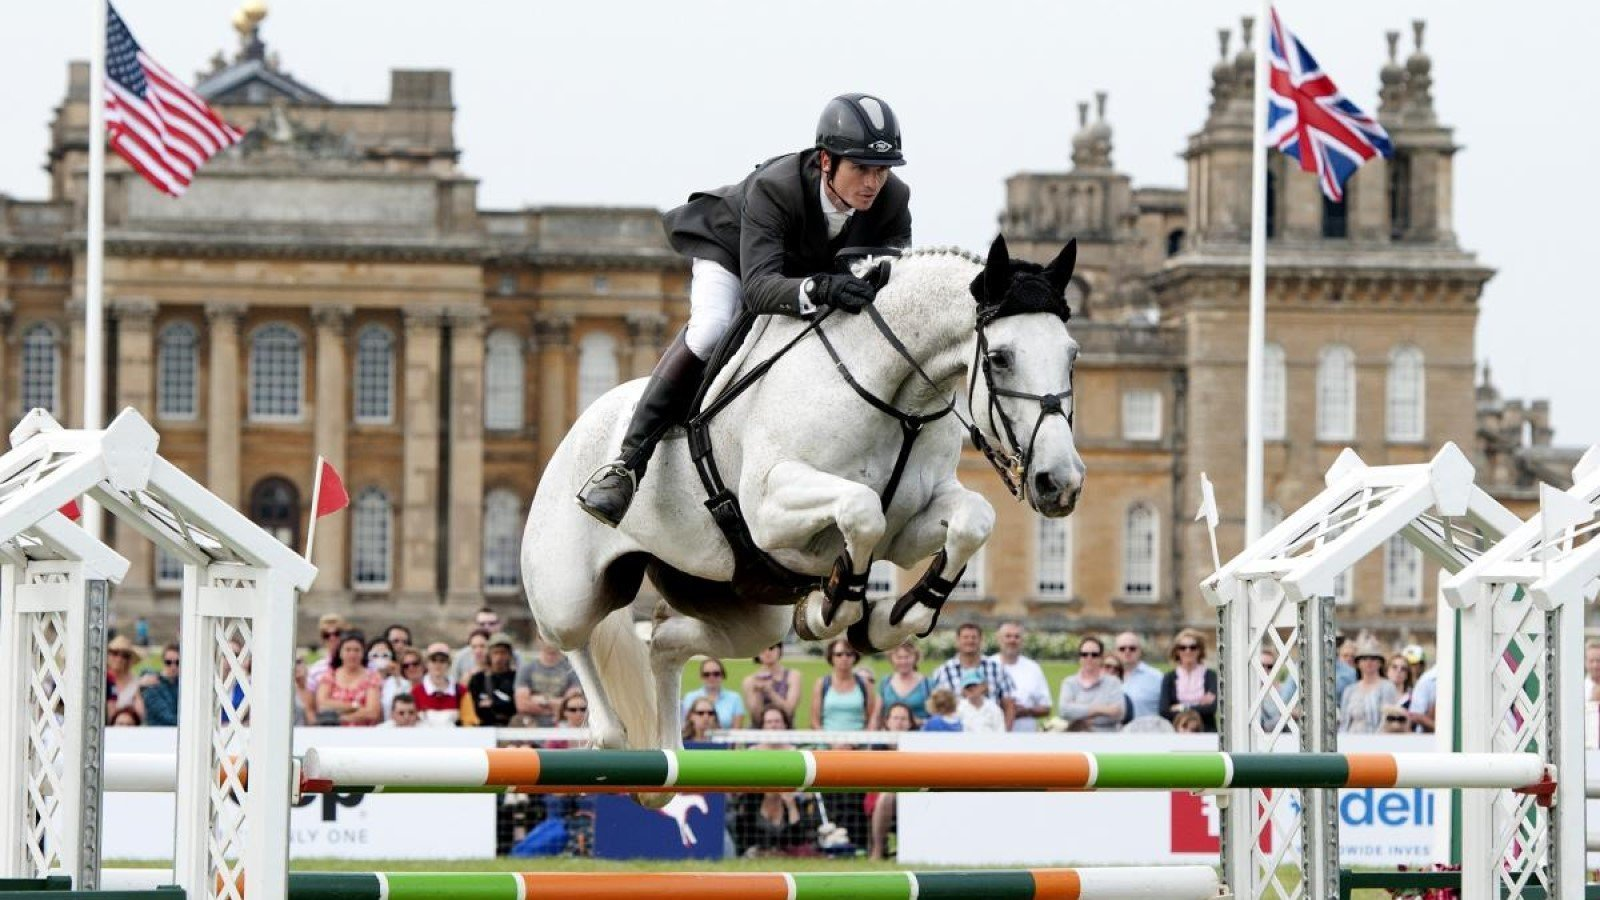 SsangYong Blenheim Palace Horse Trials 2019